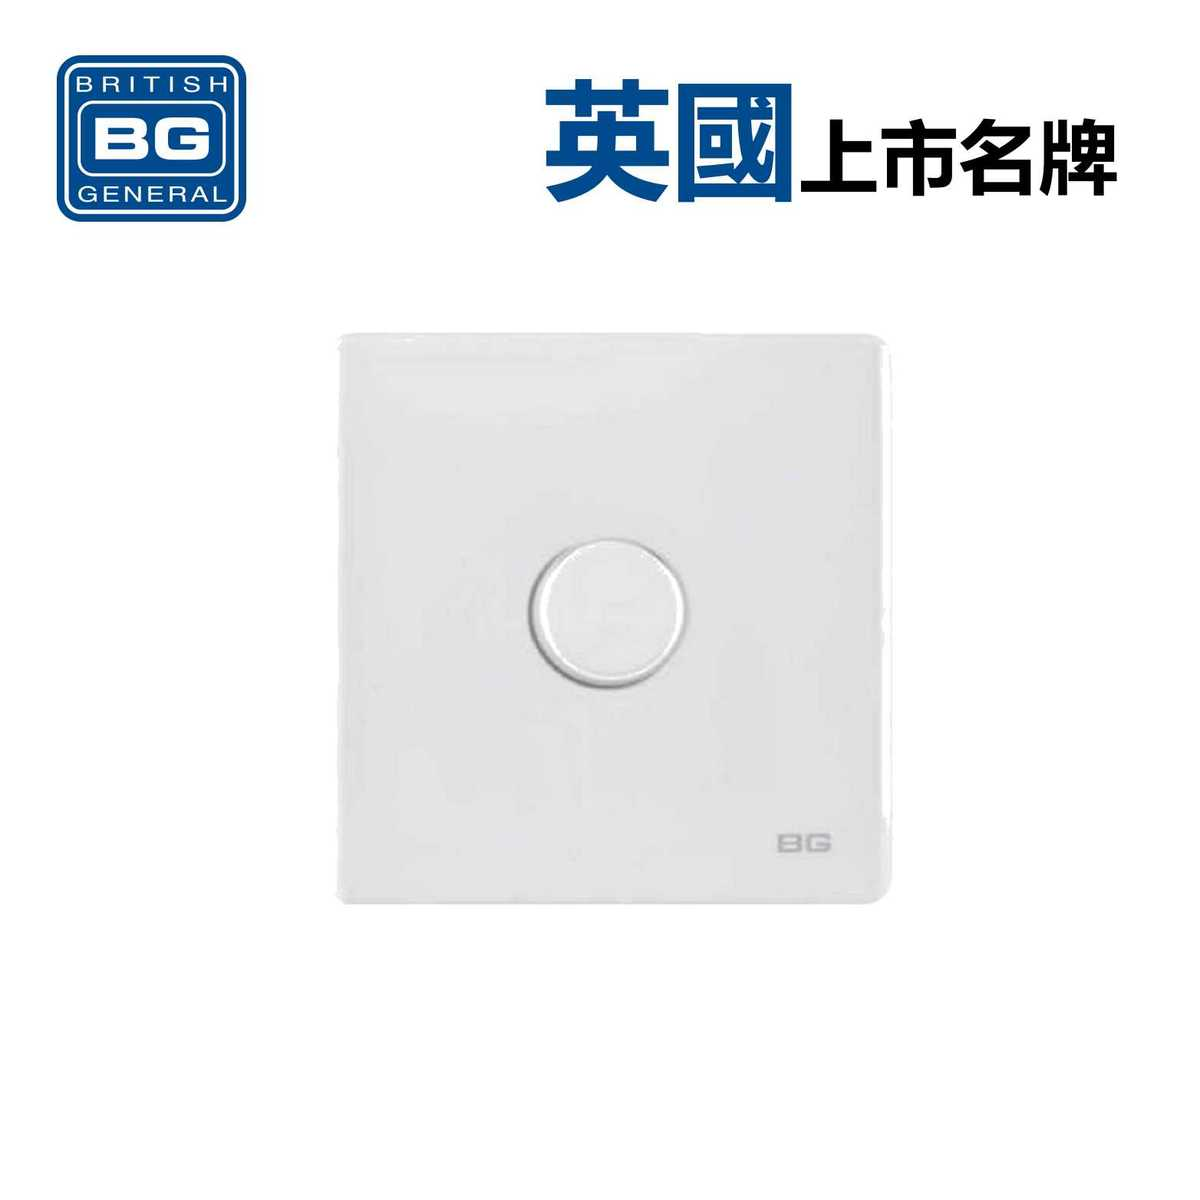 1-Gang 2-Way 400W Dimmer Switch - White (Model: PCWH81)